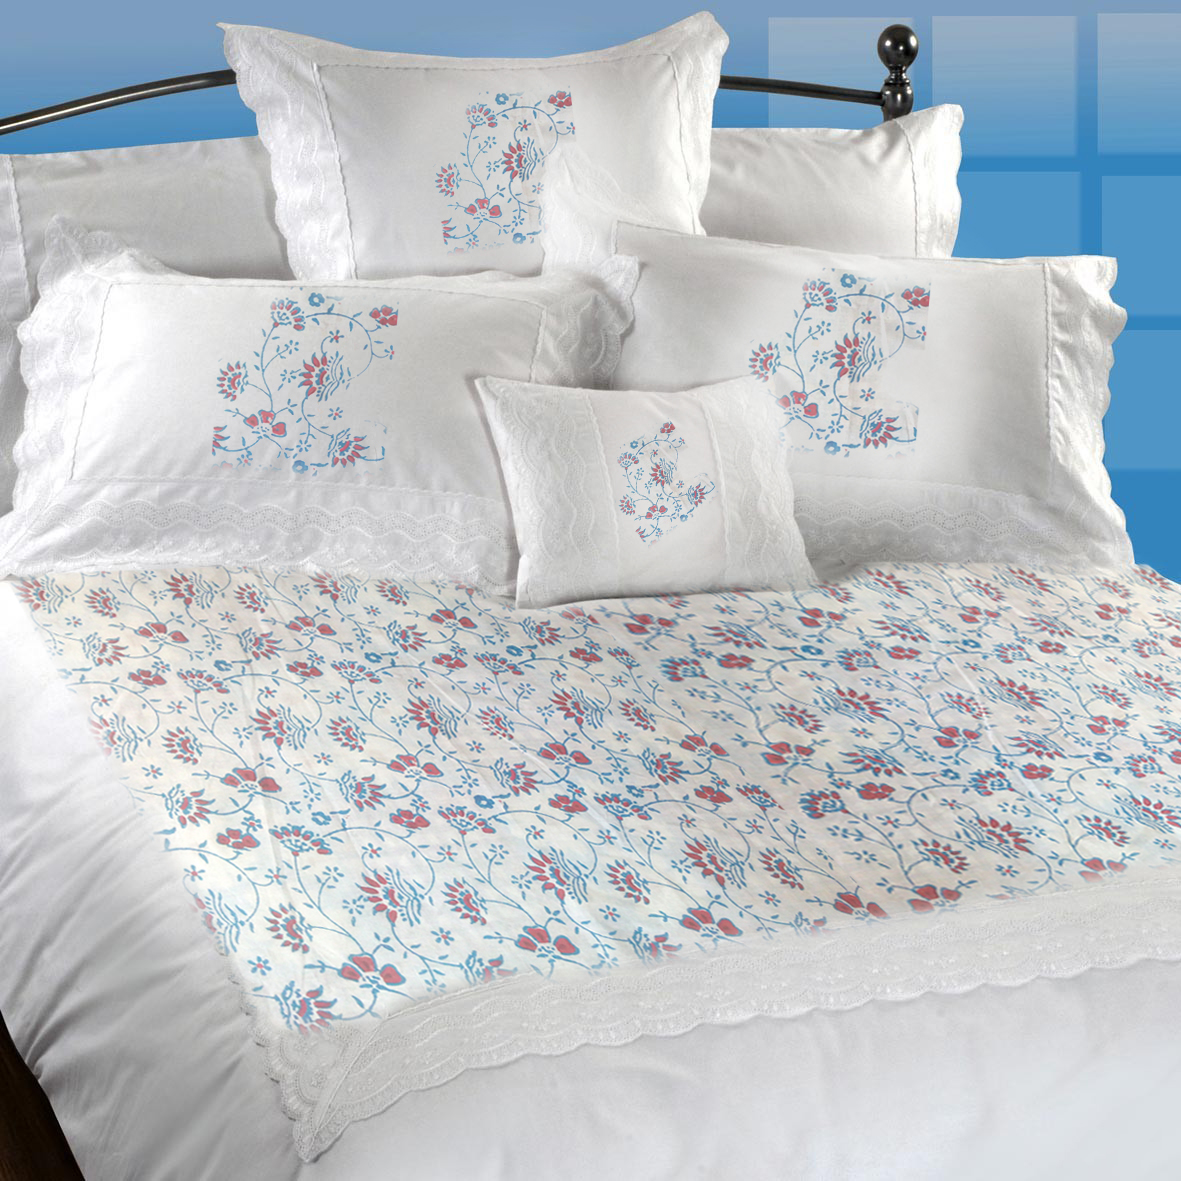 Shop for and buy bed sheets on sale online at Macy's. Find bed sheets on sale at Macy's.